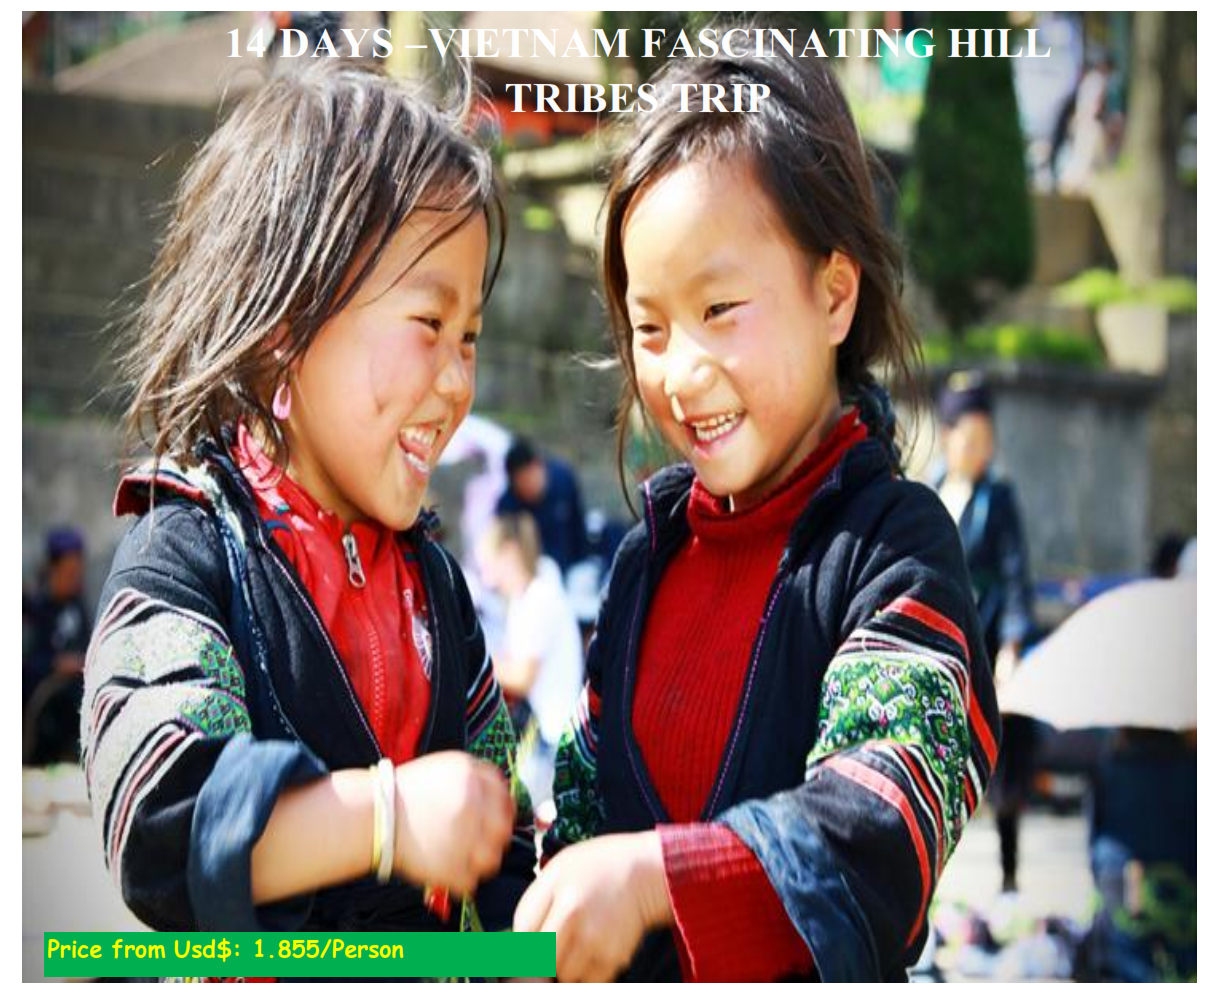 14 DAYS –VIETNAM FASCINATING HILL TRIBES TRIP